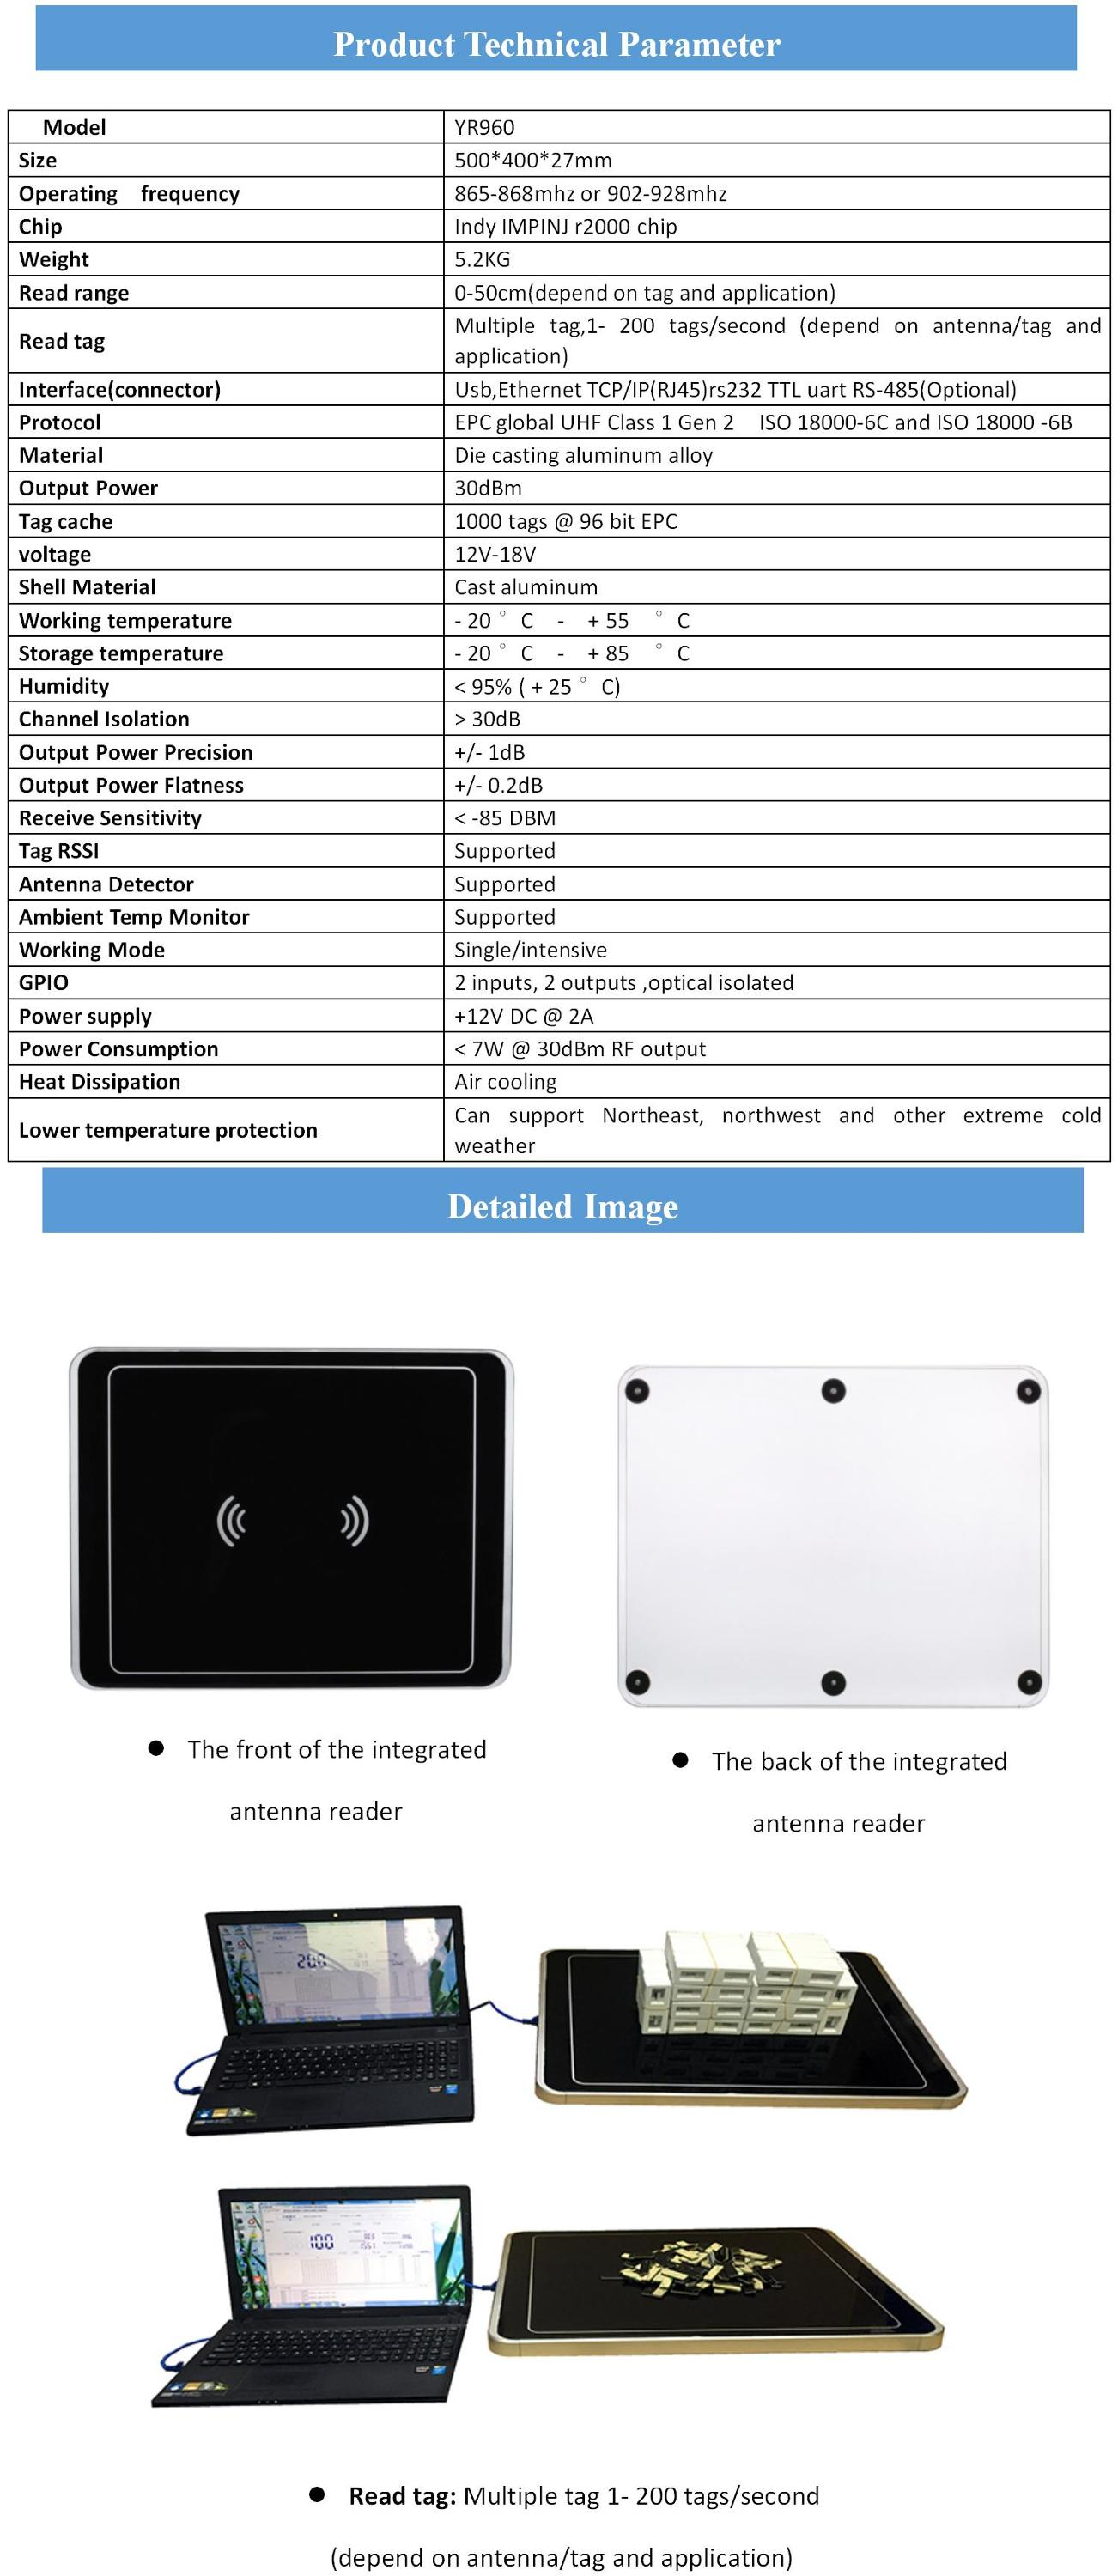 Short range rfid impinj r2000 chip reader 860-960mhz for rfid Multi-tag writer cards tag SAM antenna in asset Jewelry trace